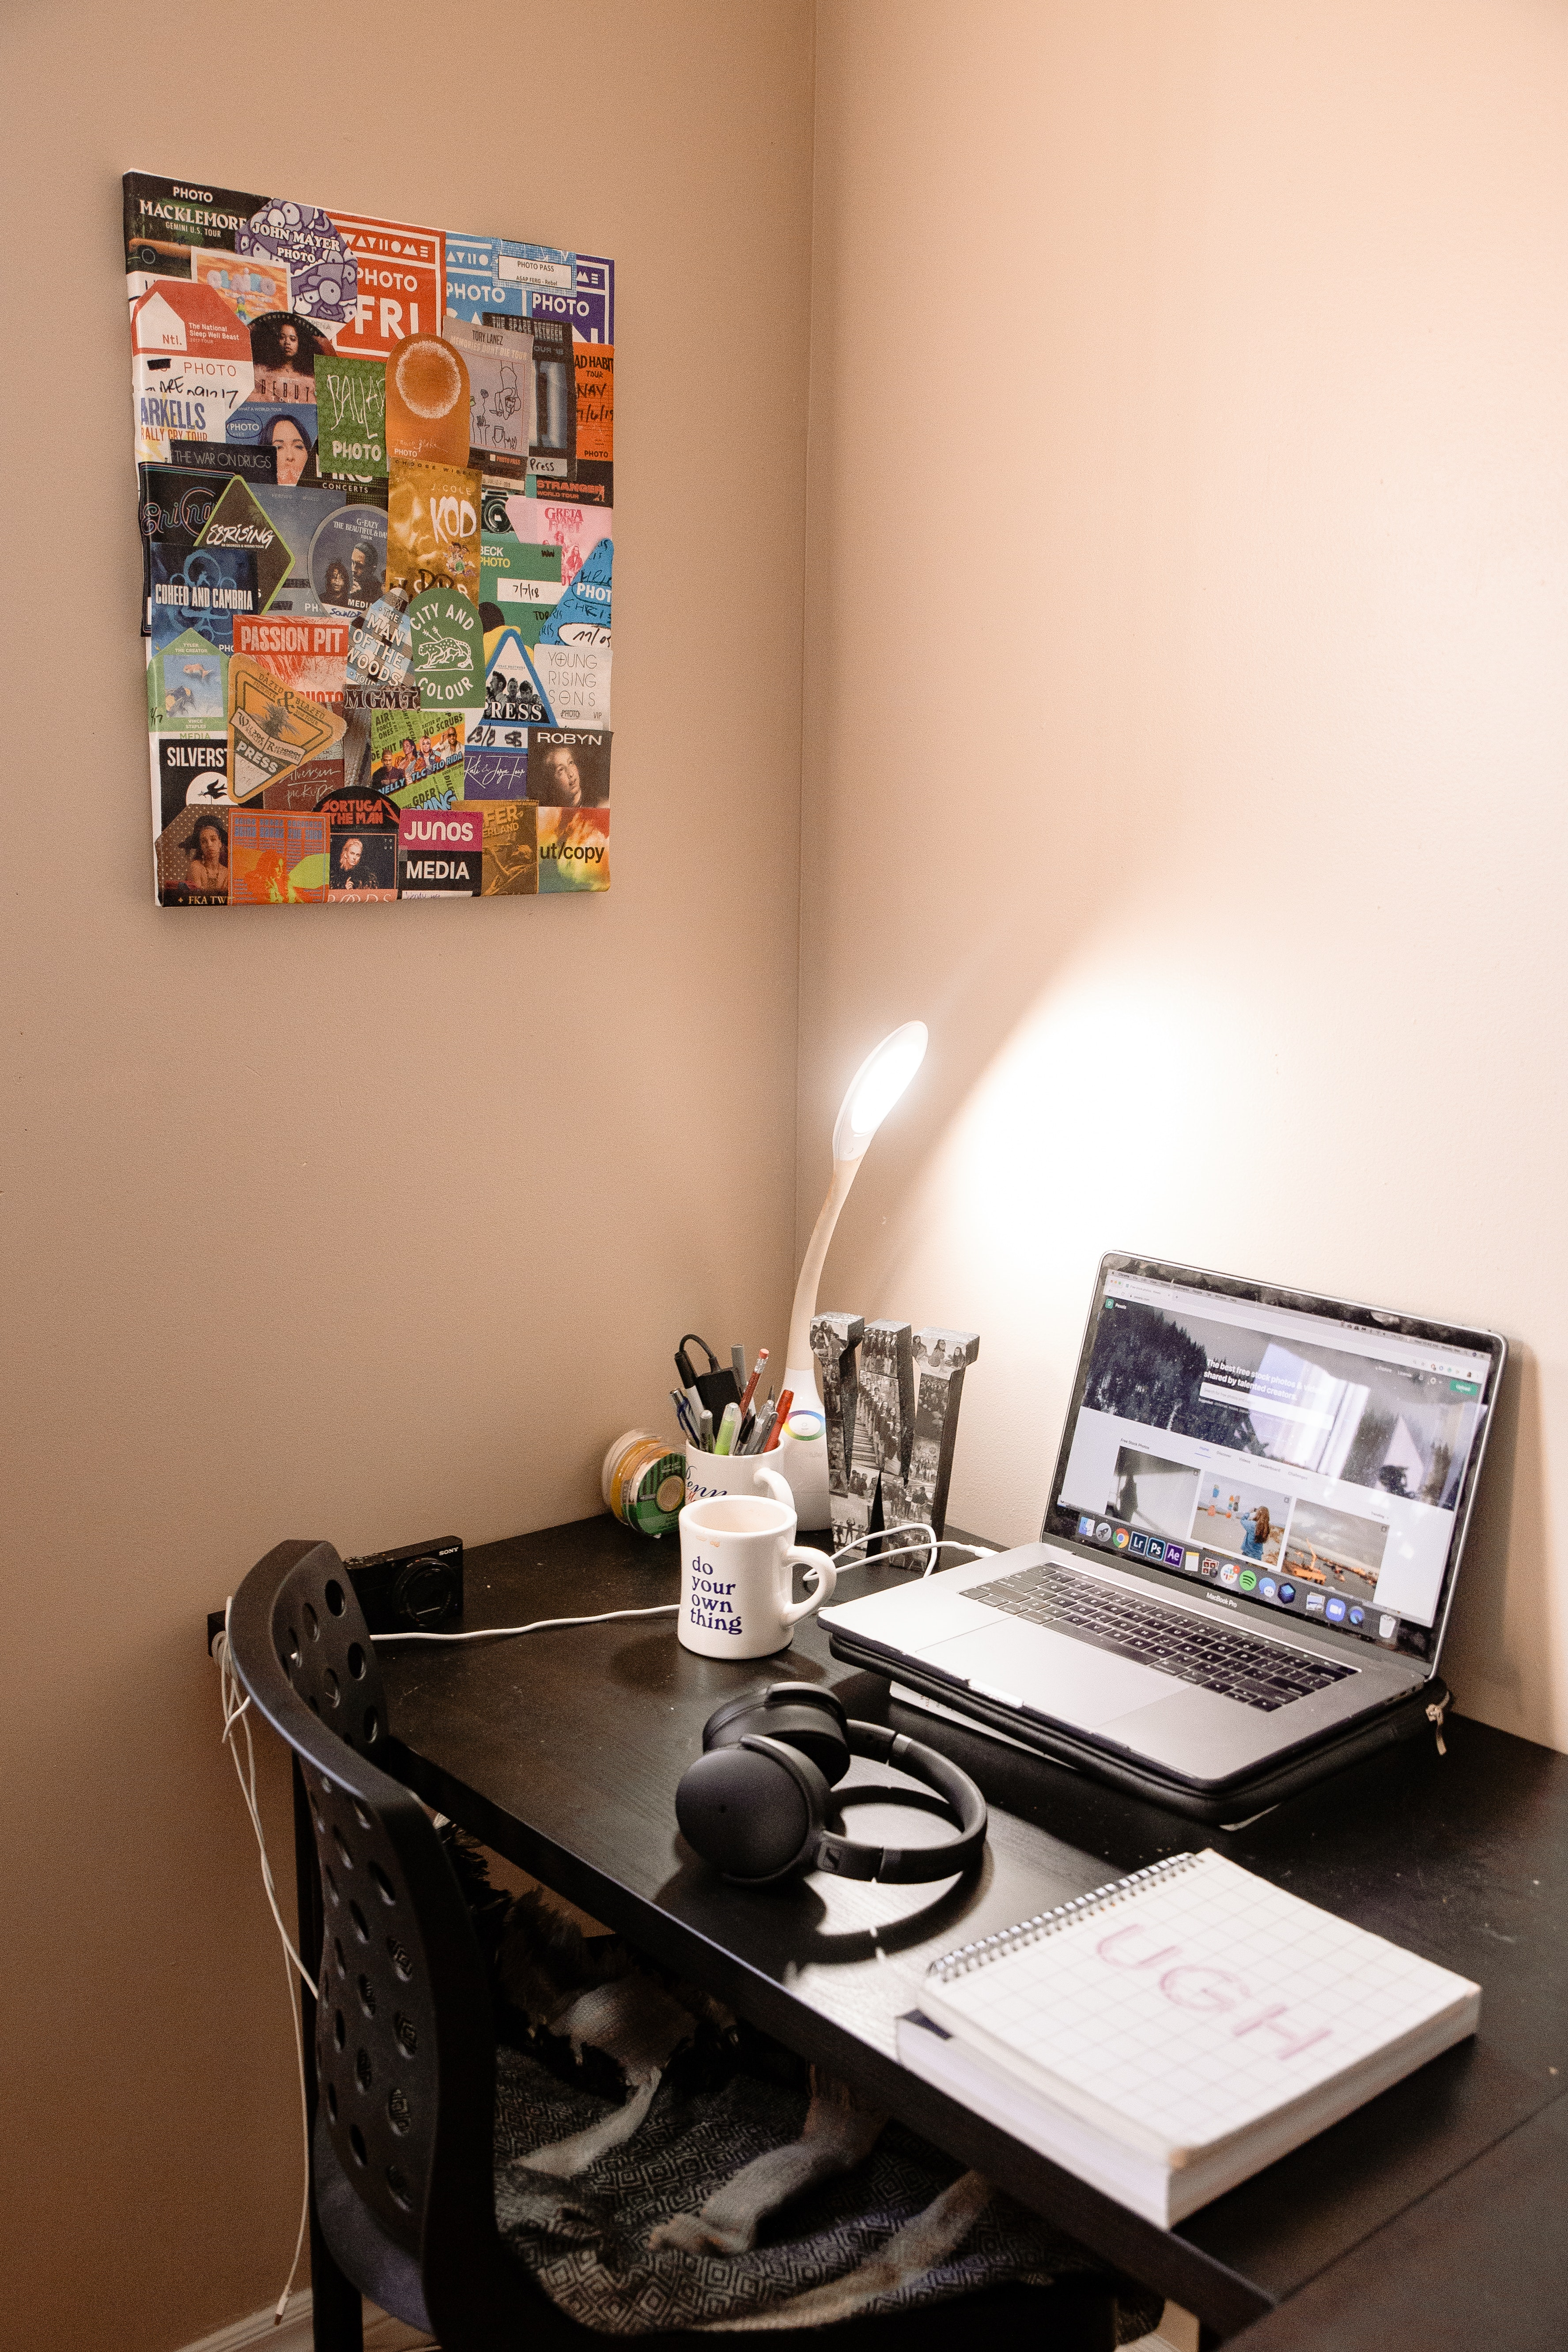 Macbook Pro On Table Beside Wall Free Stock Photo